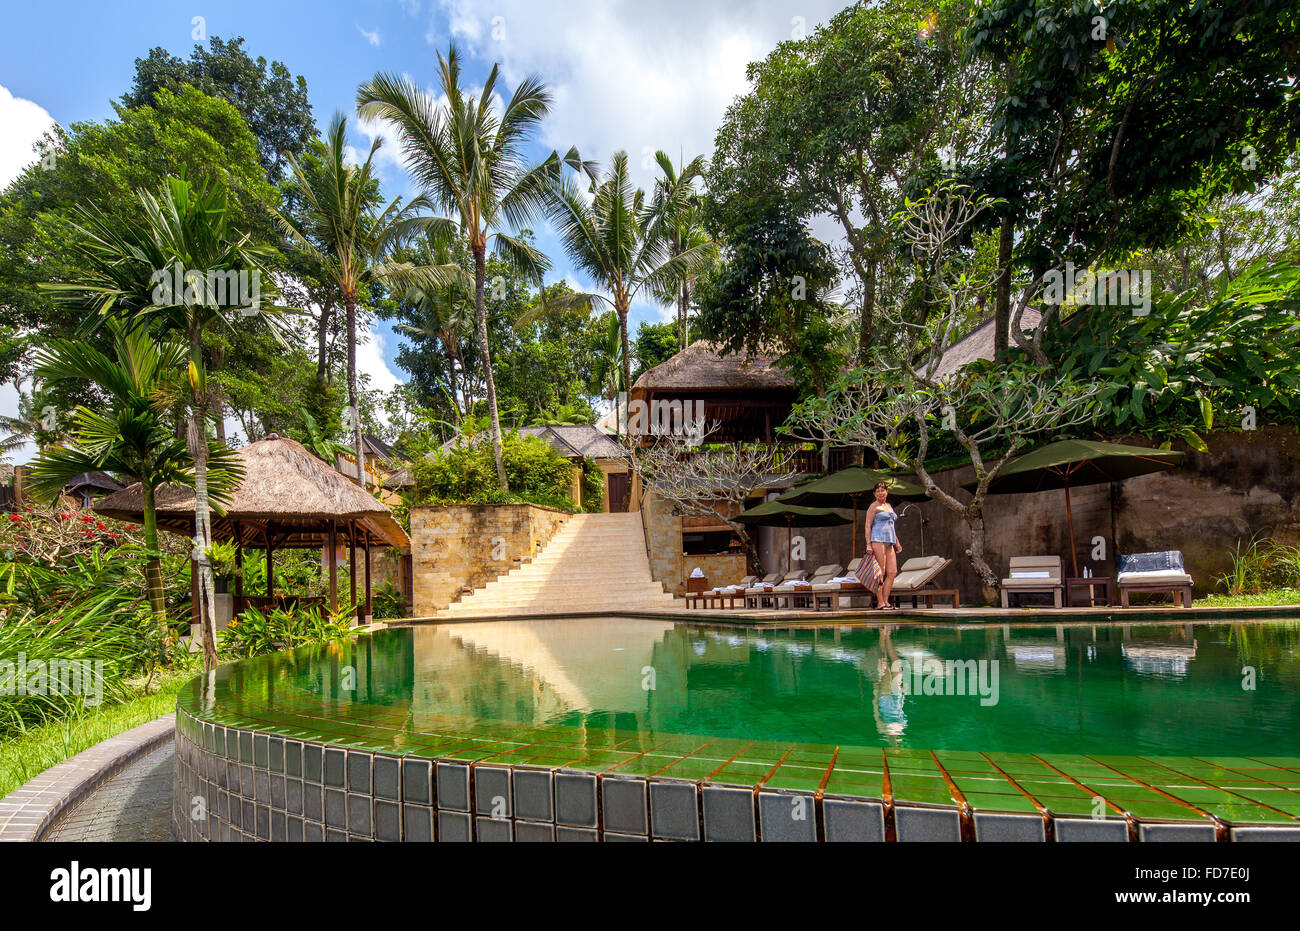 Hotel resort with pool and palm trees, Ubud, Bali, Indonesia, Asia - Stock Image